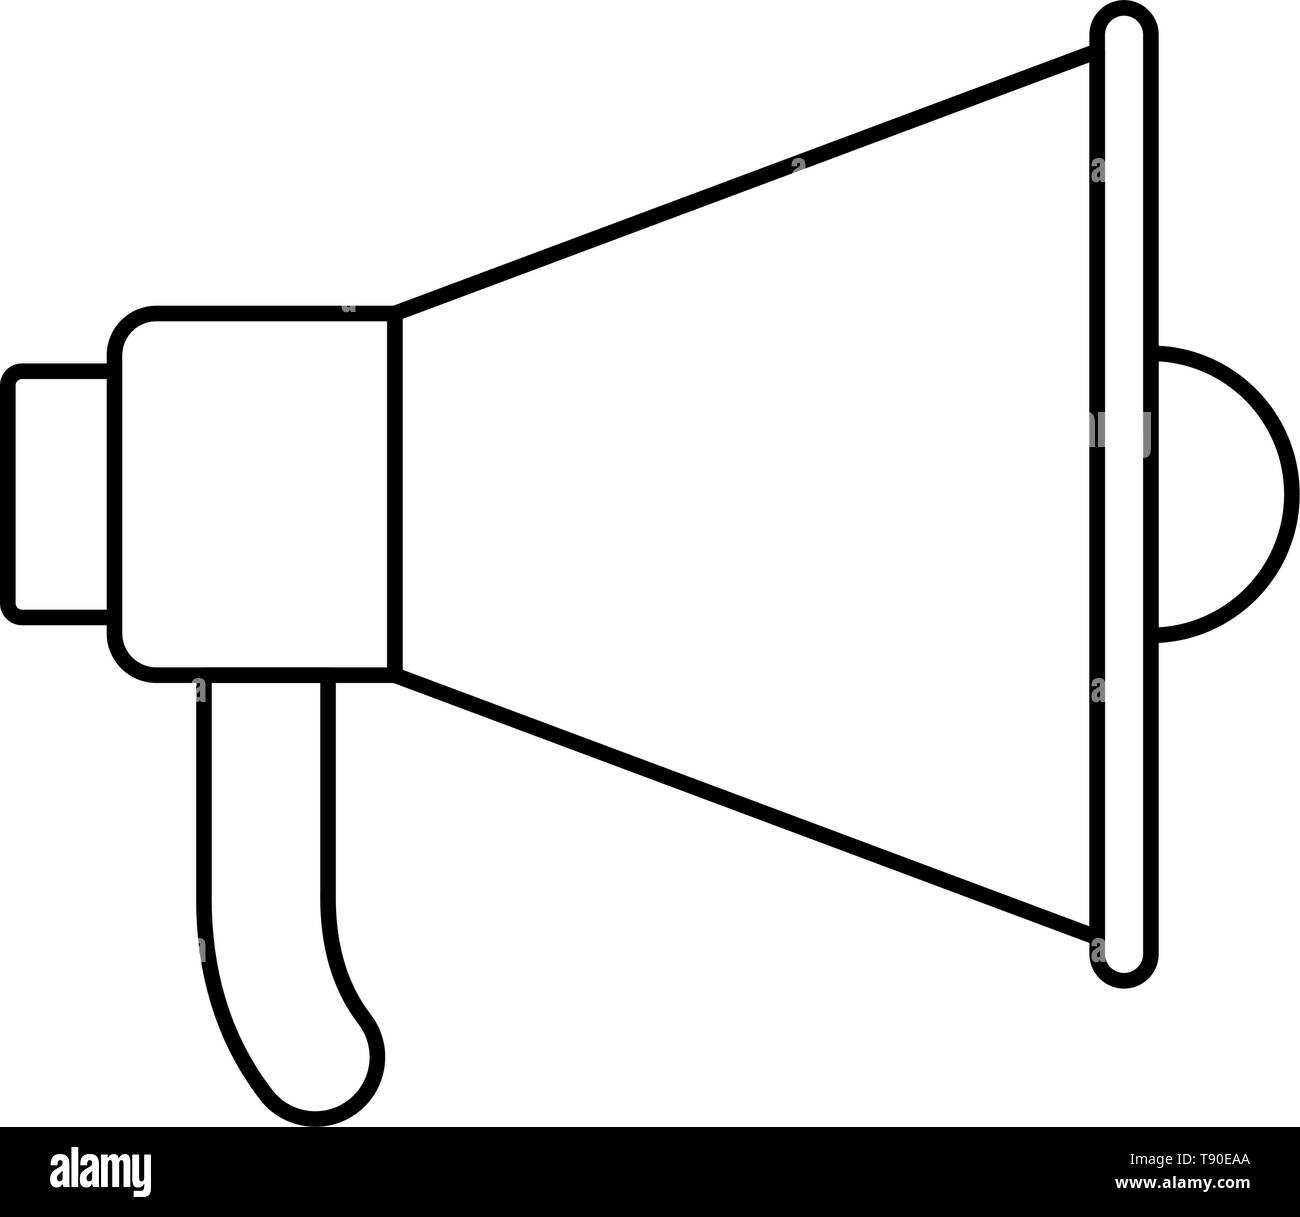 megaphone silhouette with white background Stock Vector